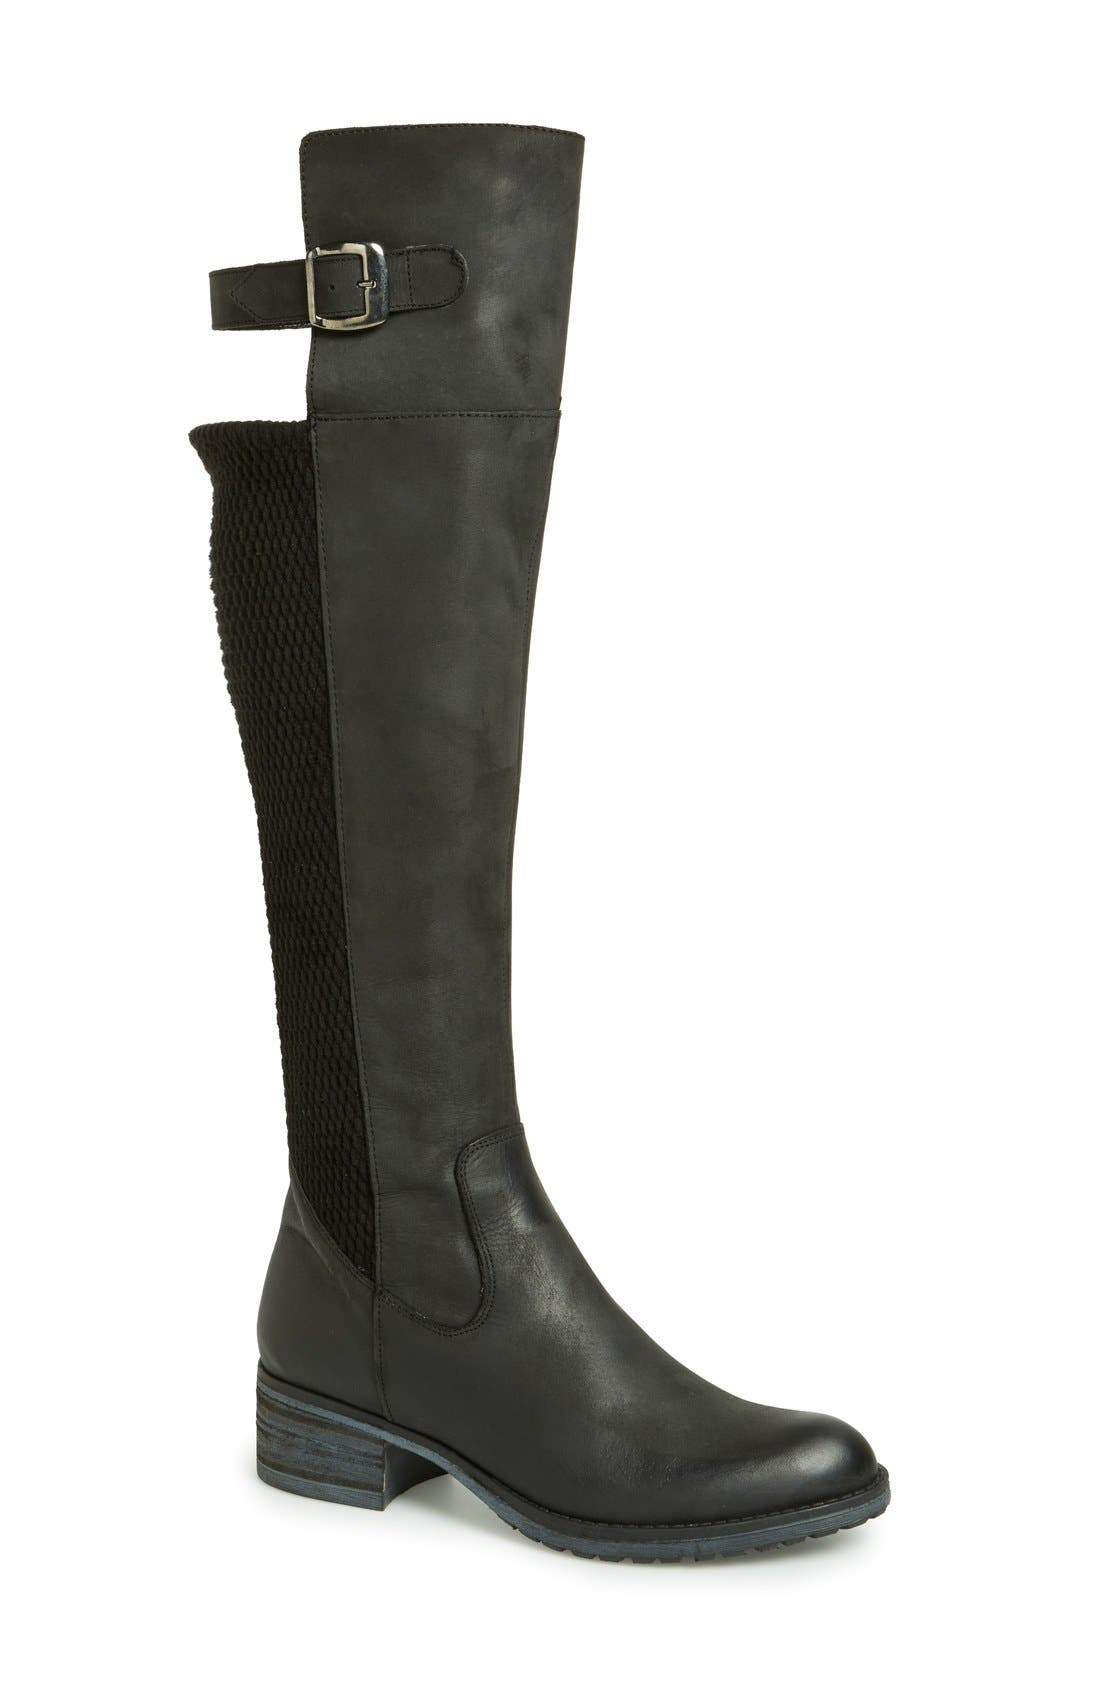 Main Image - Summit 'Lizzie' Over the Knee Boot (Women)